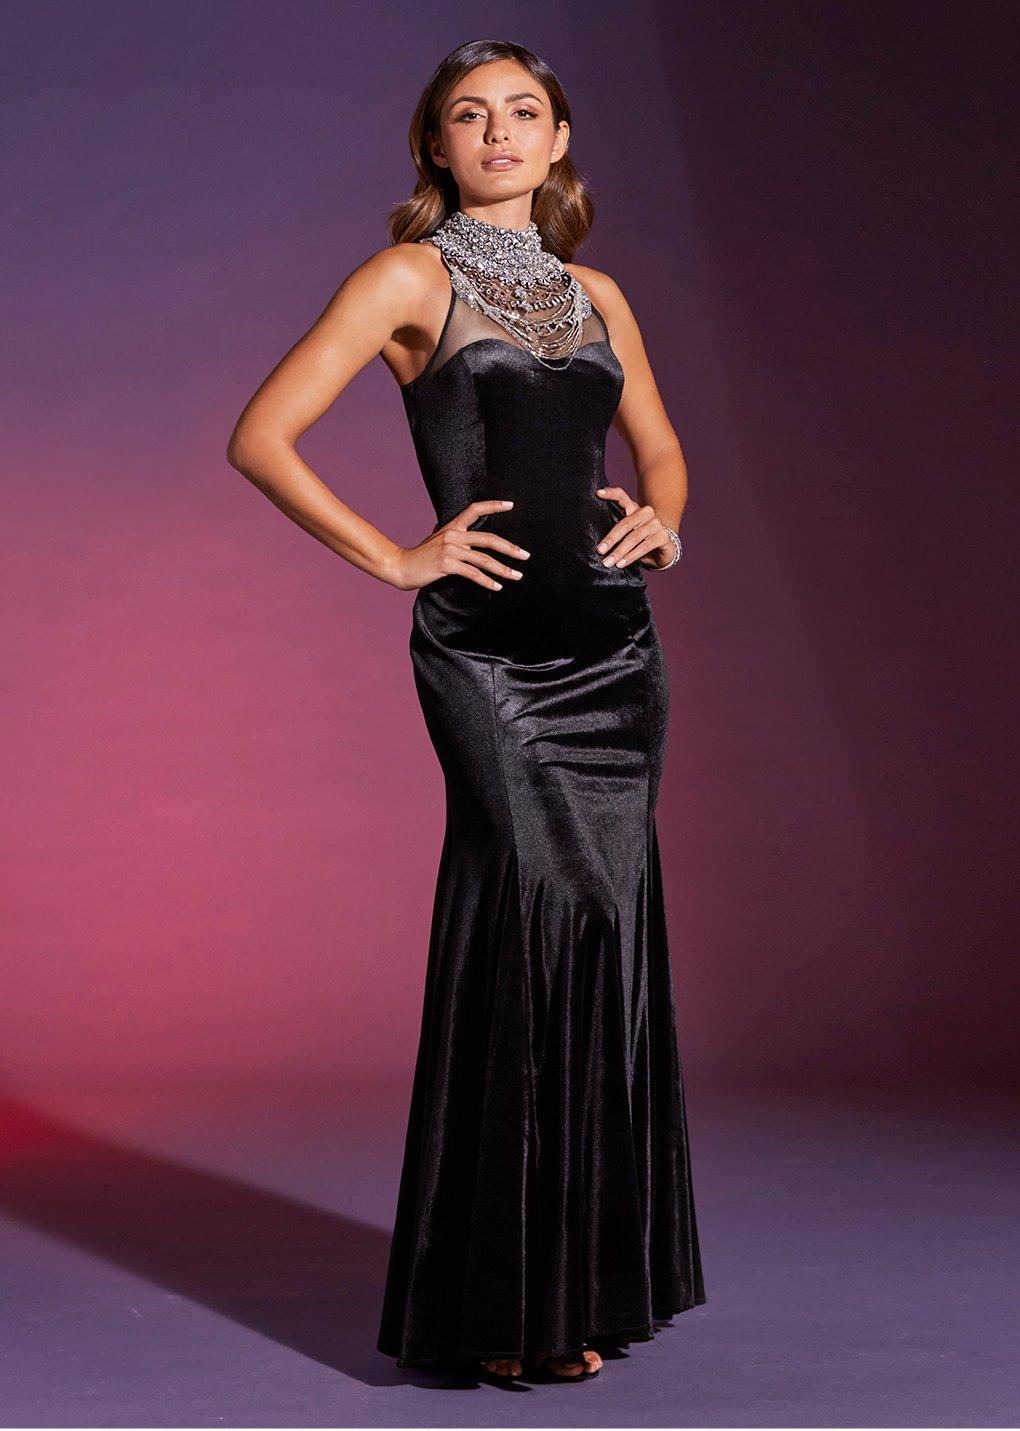 model wearing black illusion gown with jewel embellished neckline